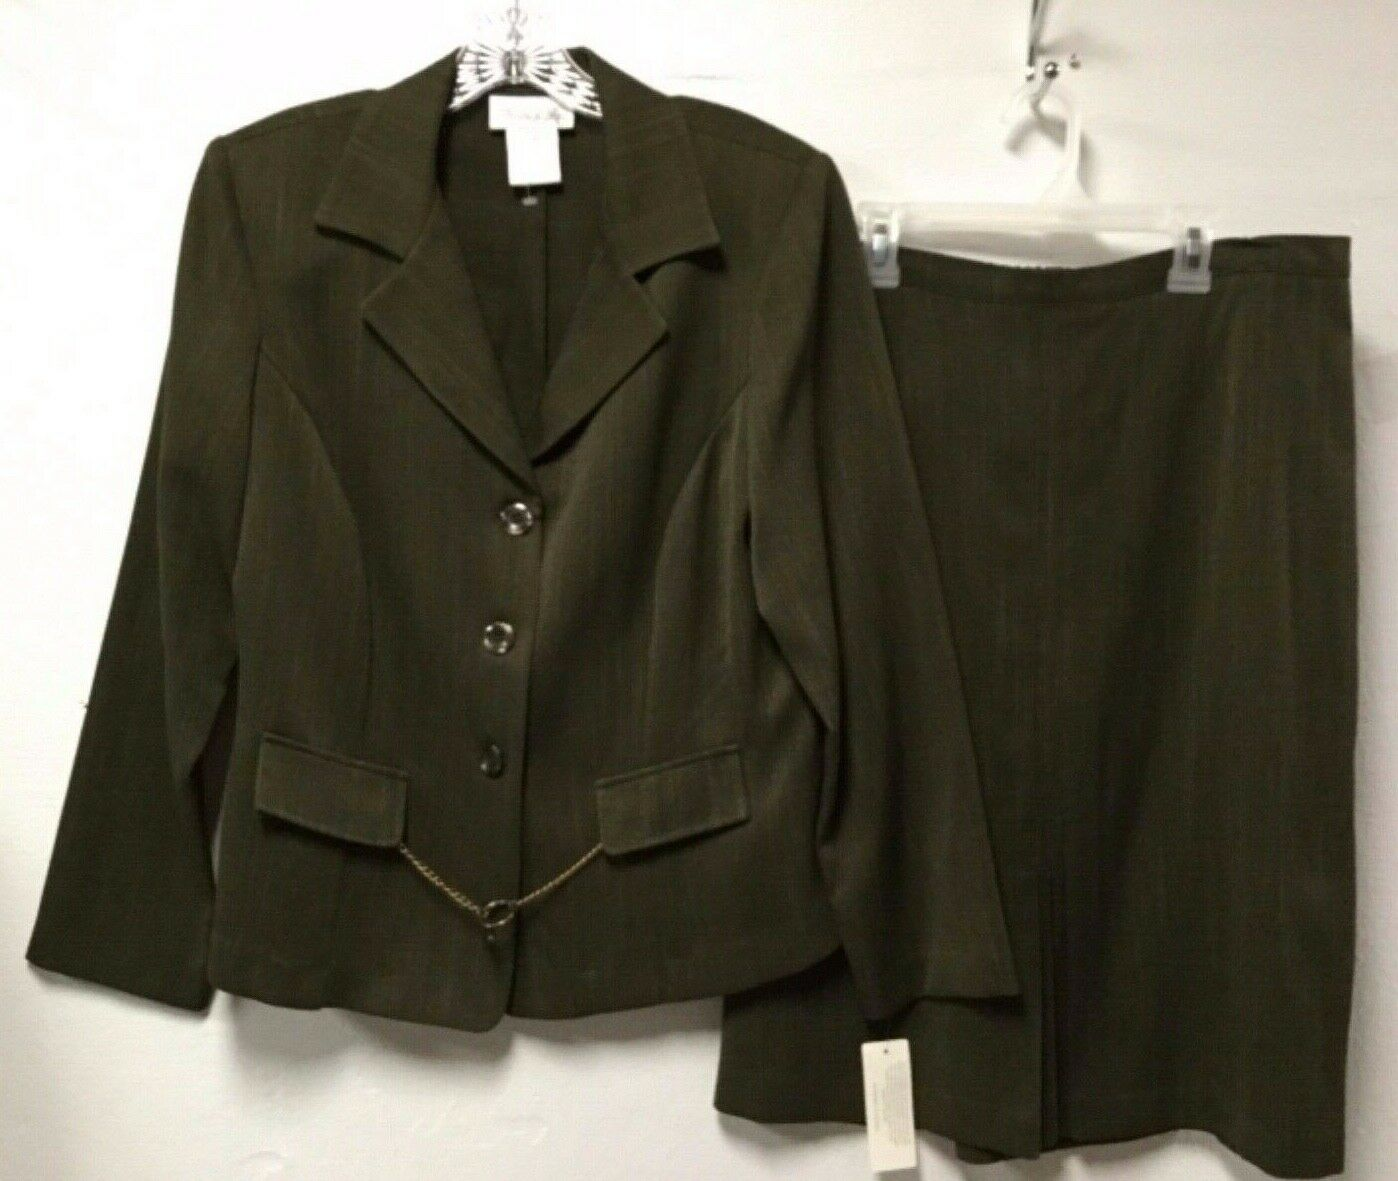 Womens Lightweight Skirt Suit Size 14 Dark Green 3-Button Pride & Joy New 27